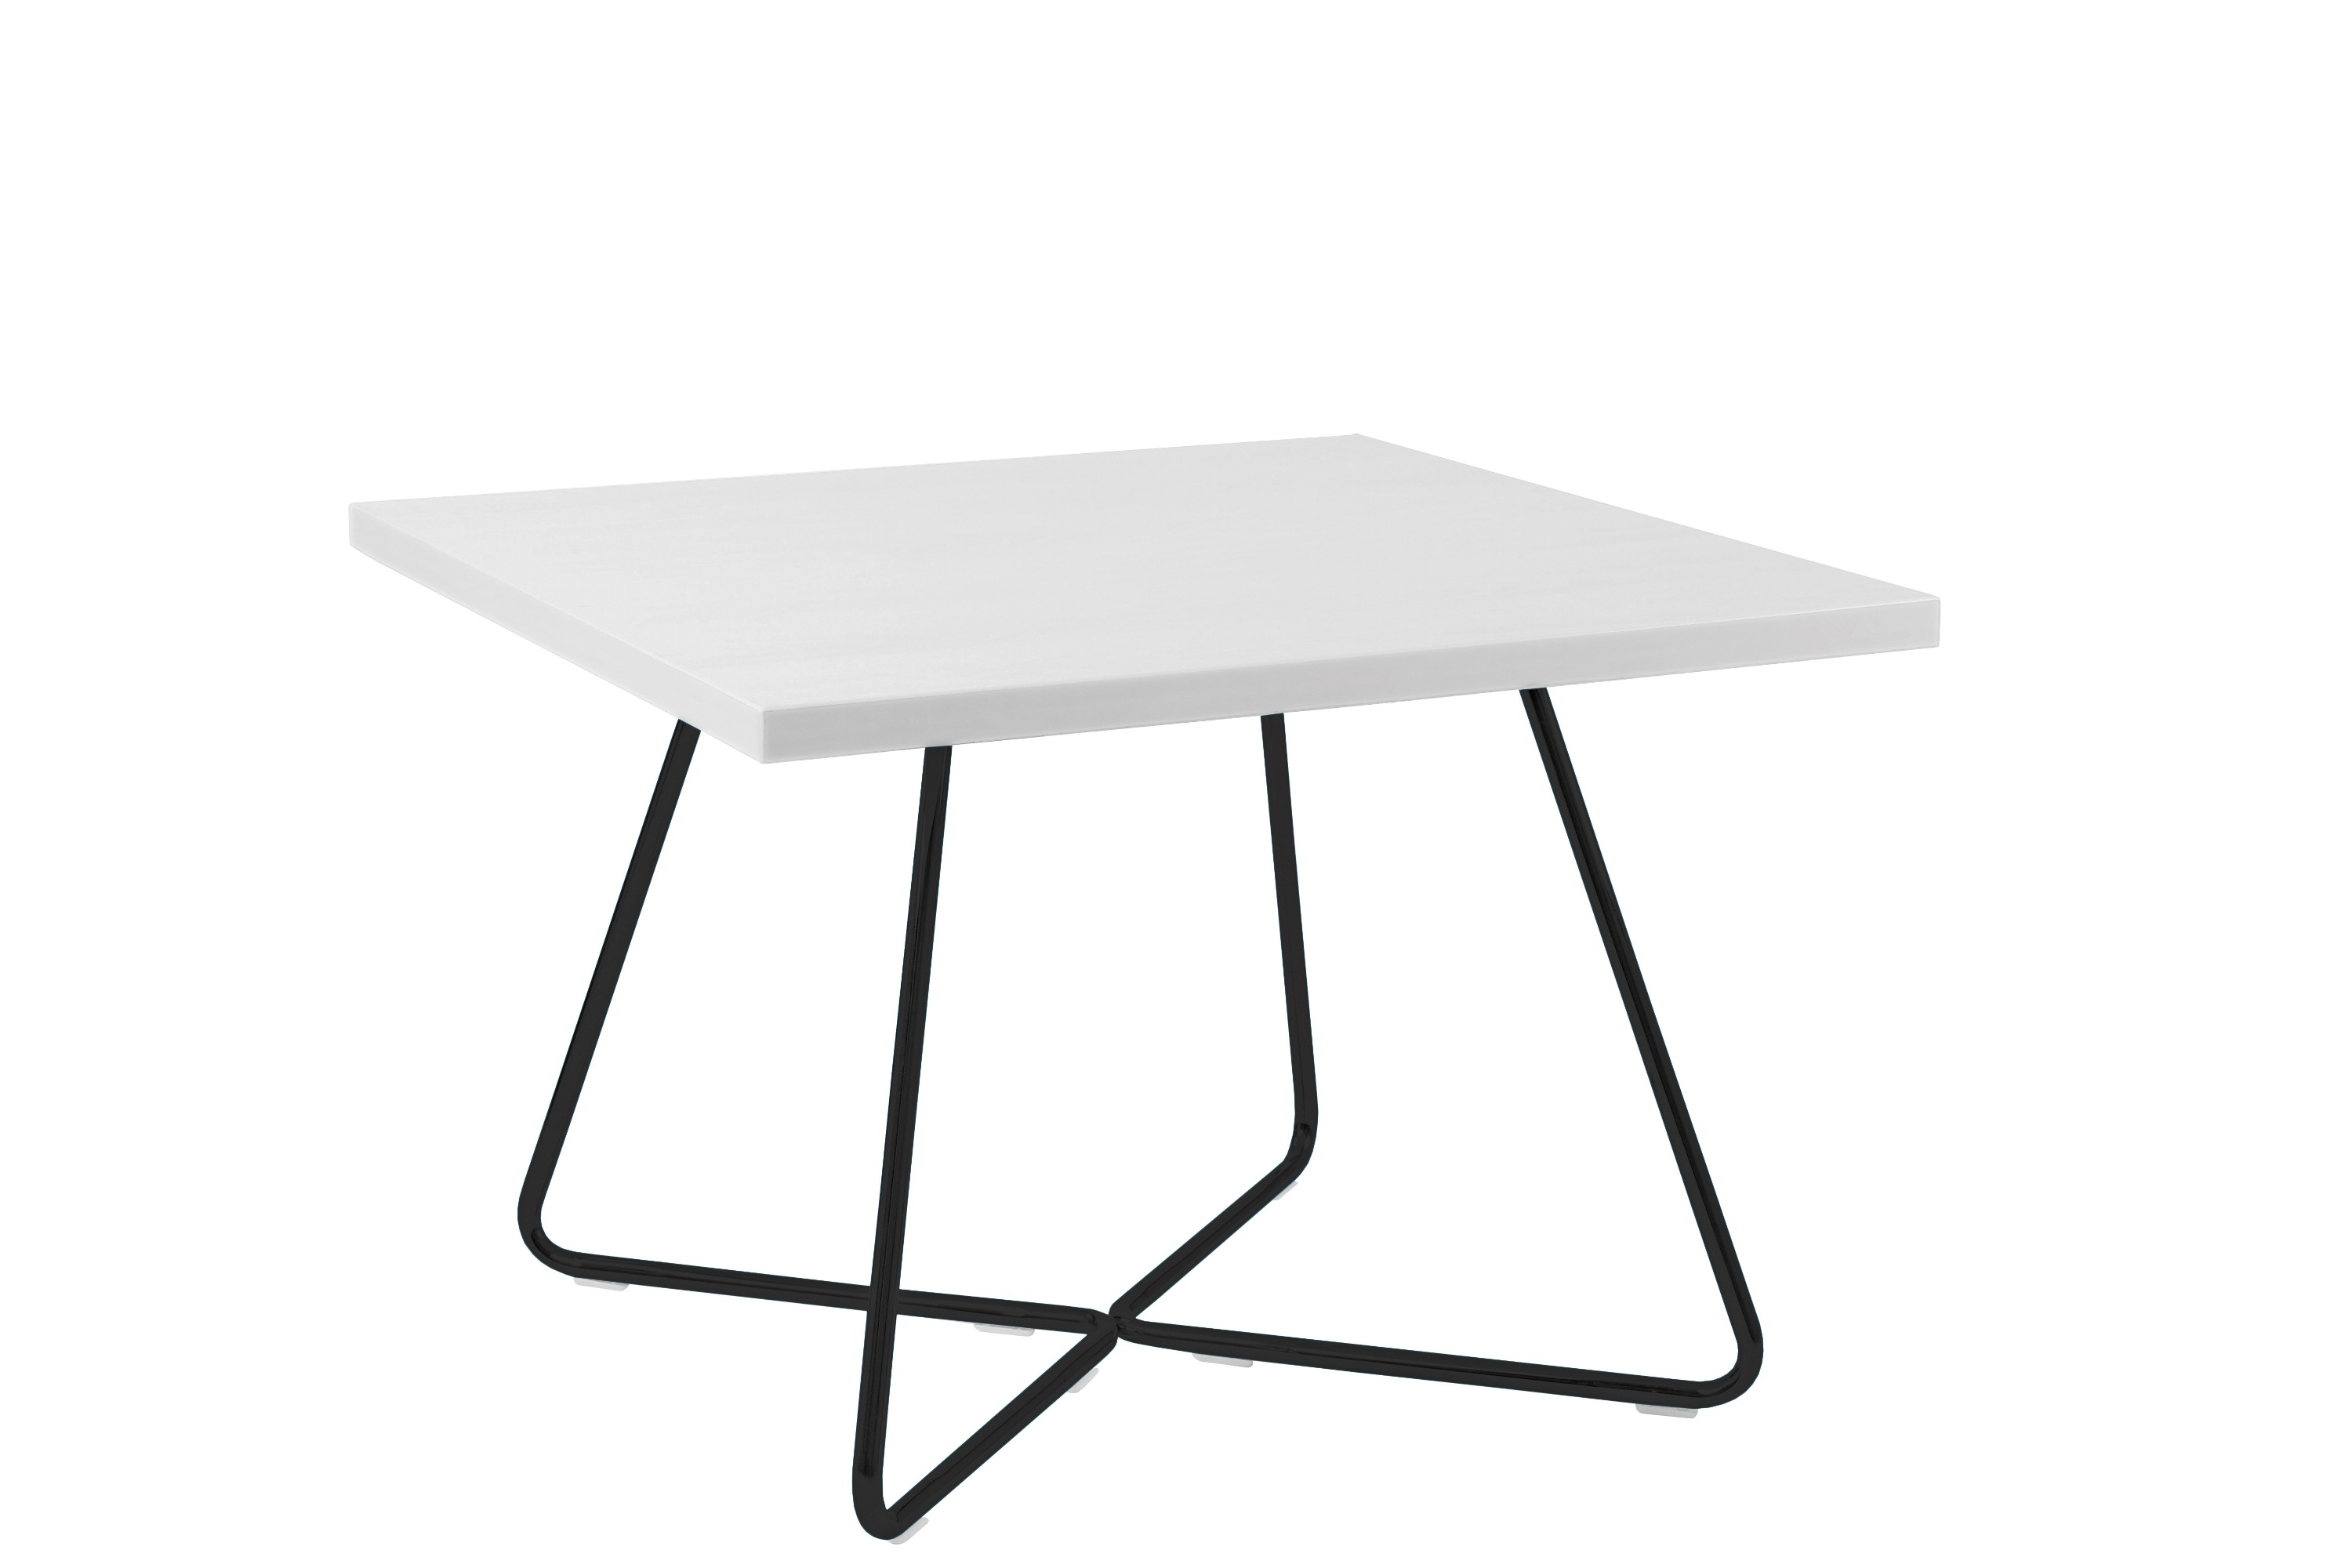 Wire Coffee Table From Frovi Furniture Design | Frovi intended for Black Wire Coffee Tables (Image 25 of 30)